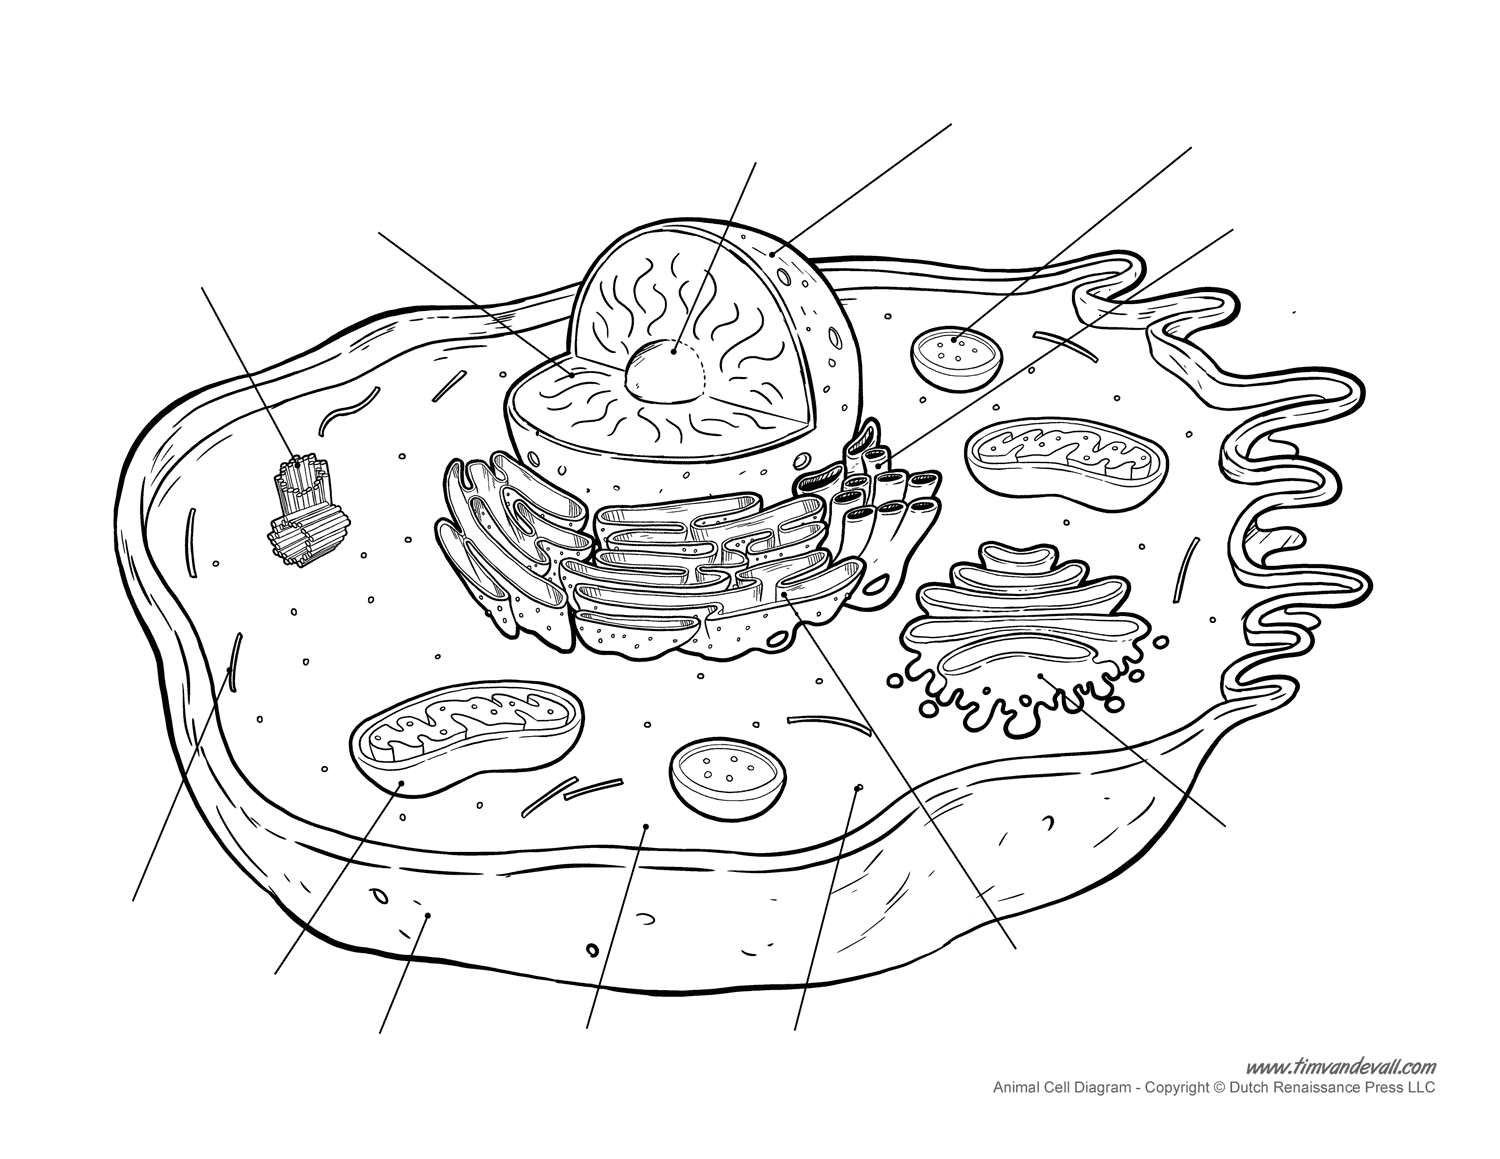 animal-cell-diagram-unlabeled - Tim's Printables